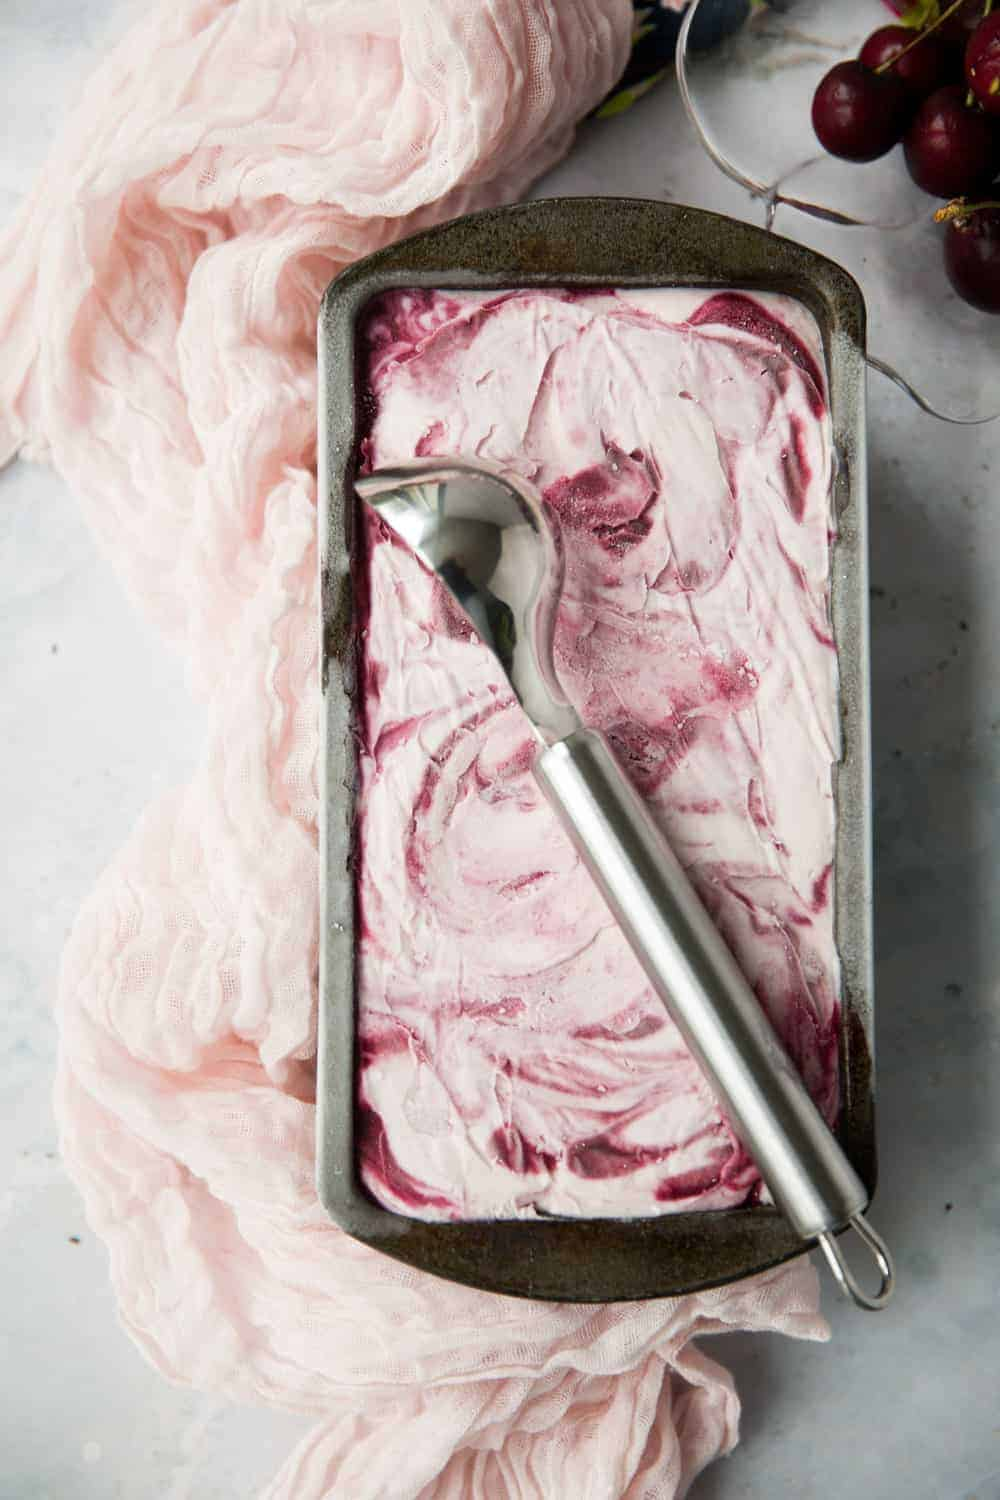 A loaf tin with black cherry ice cream inside. There is a silver ice cream scoop resting on top of the tin.